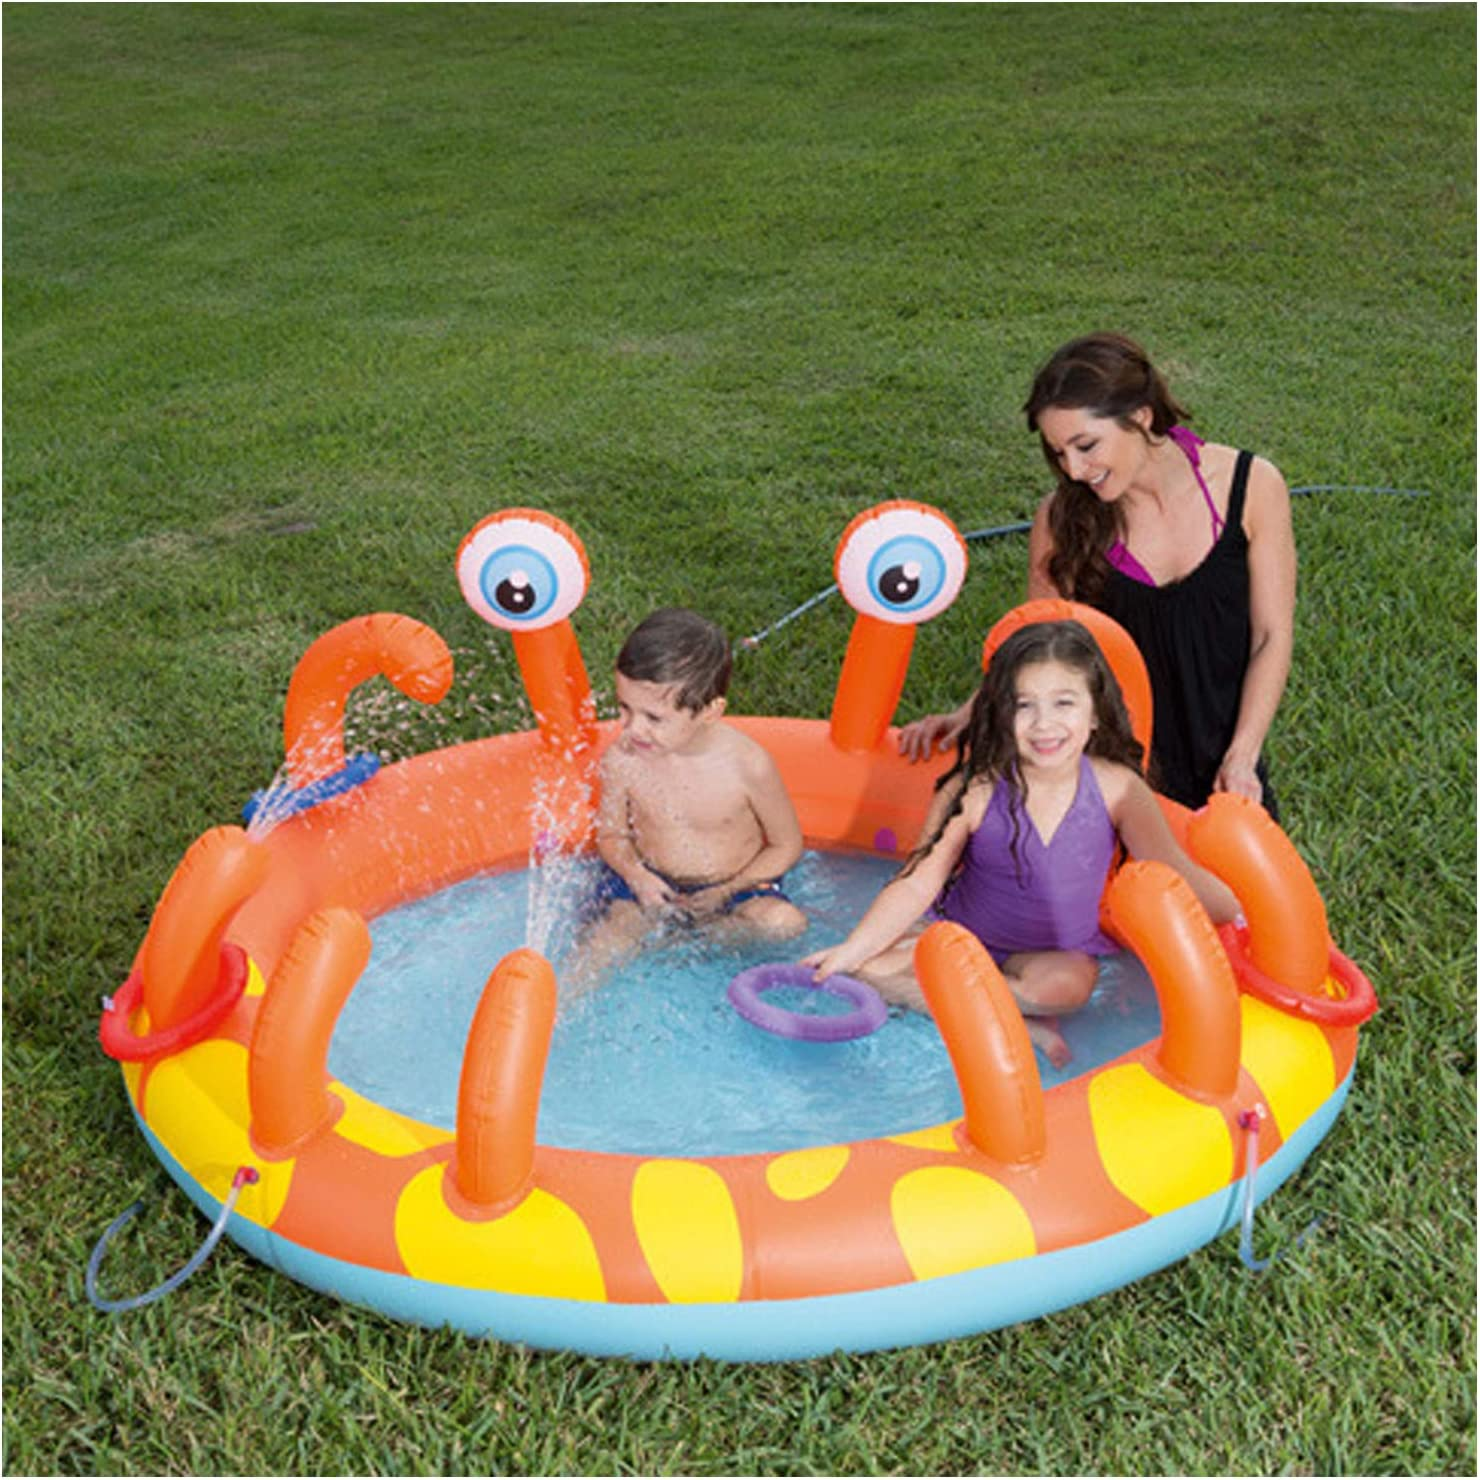 MEIHOME Inflatable Pool for with Sprinkler Ranking TOP3 Kids Translated Spray